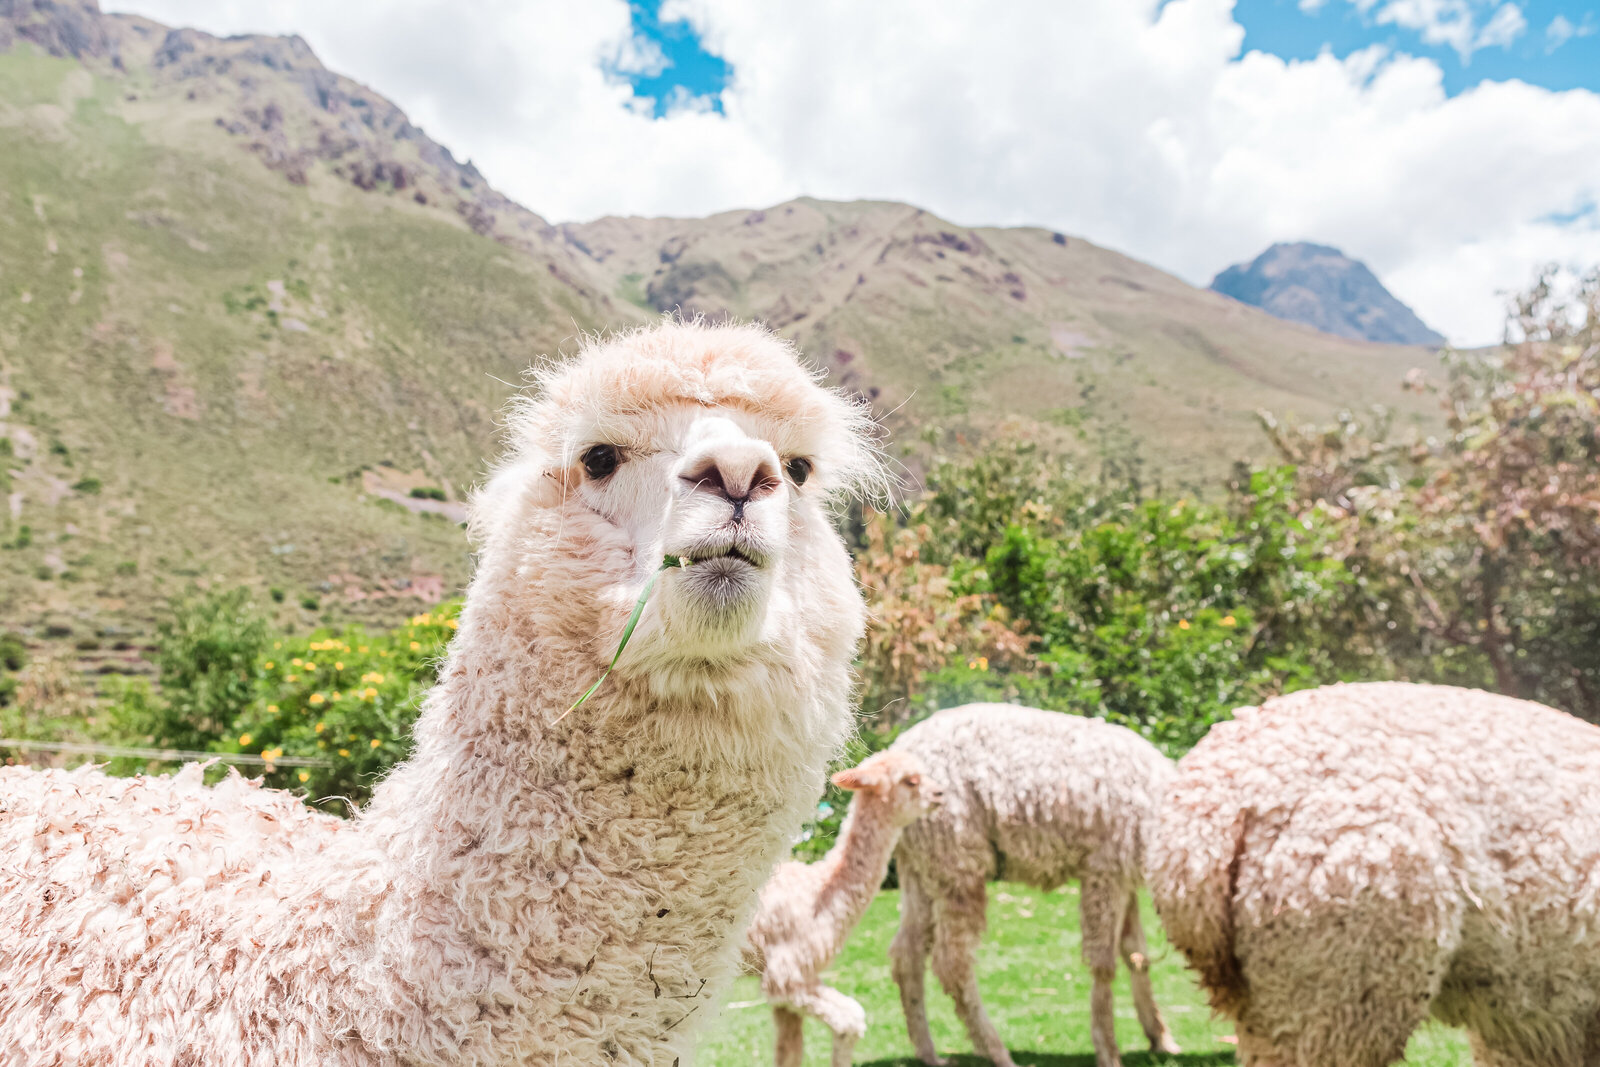 047-KBP-Peru-Cusco-Sacred-Valley-Llamas-006